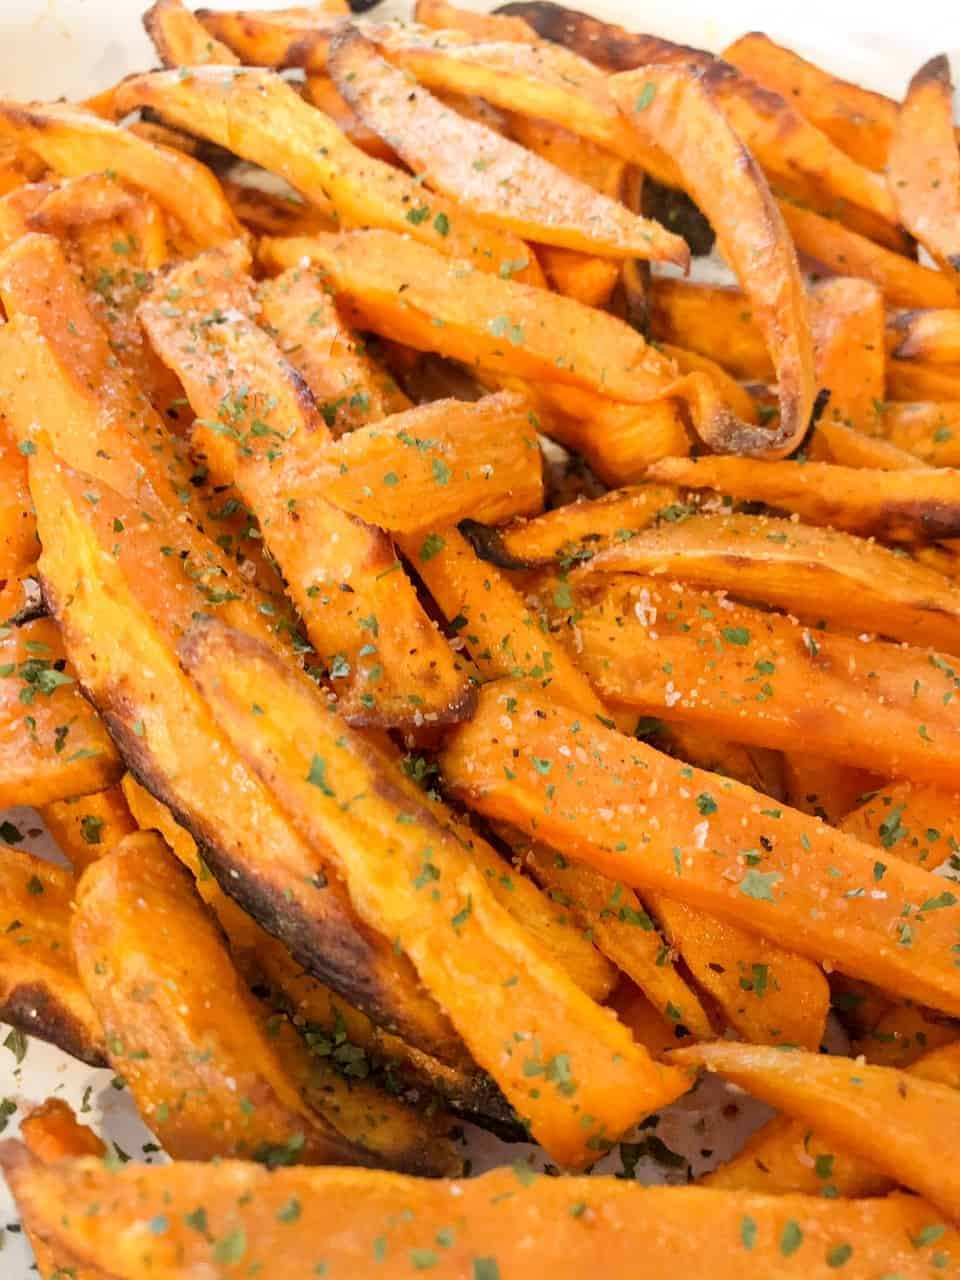 Crispy sweet potato fries topped with sea salt and parsley